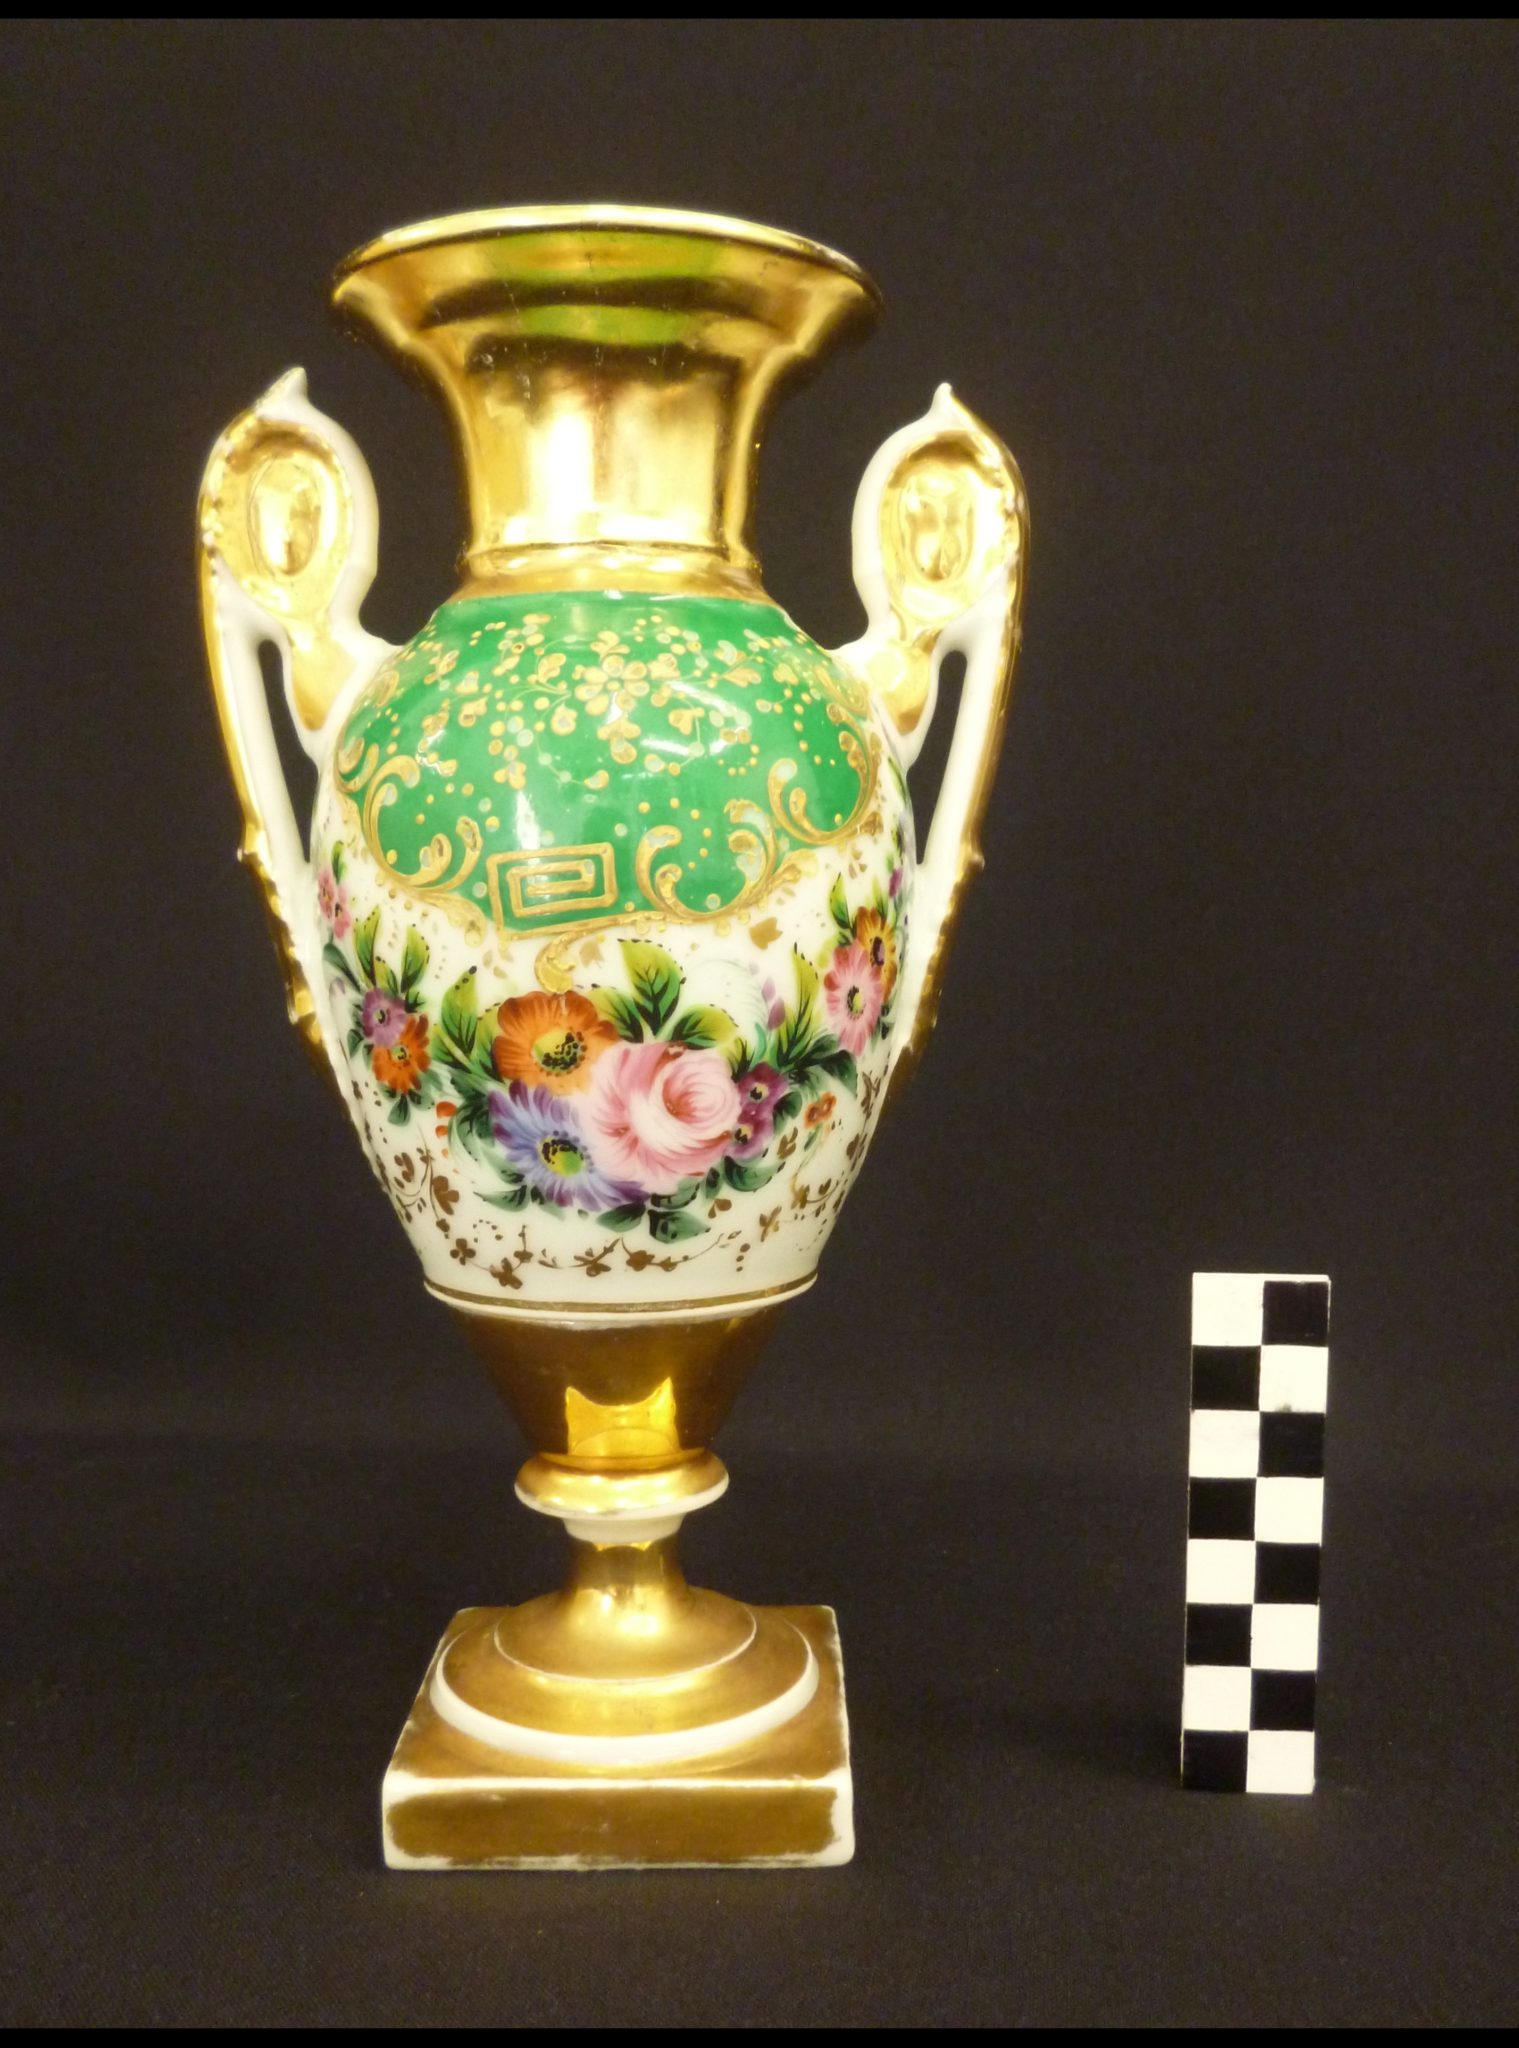 vase de paris dorure col restauration illusionniste